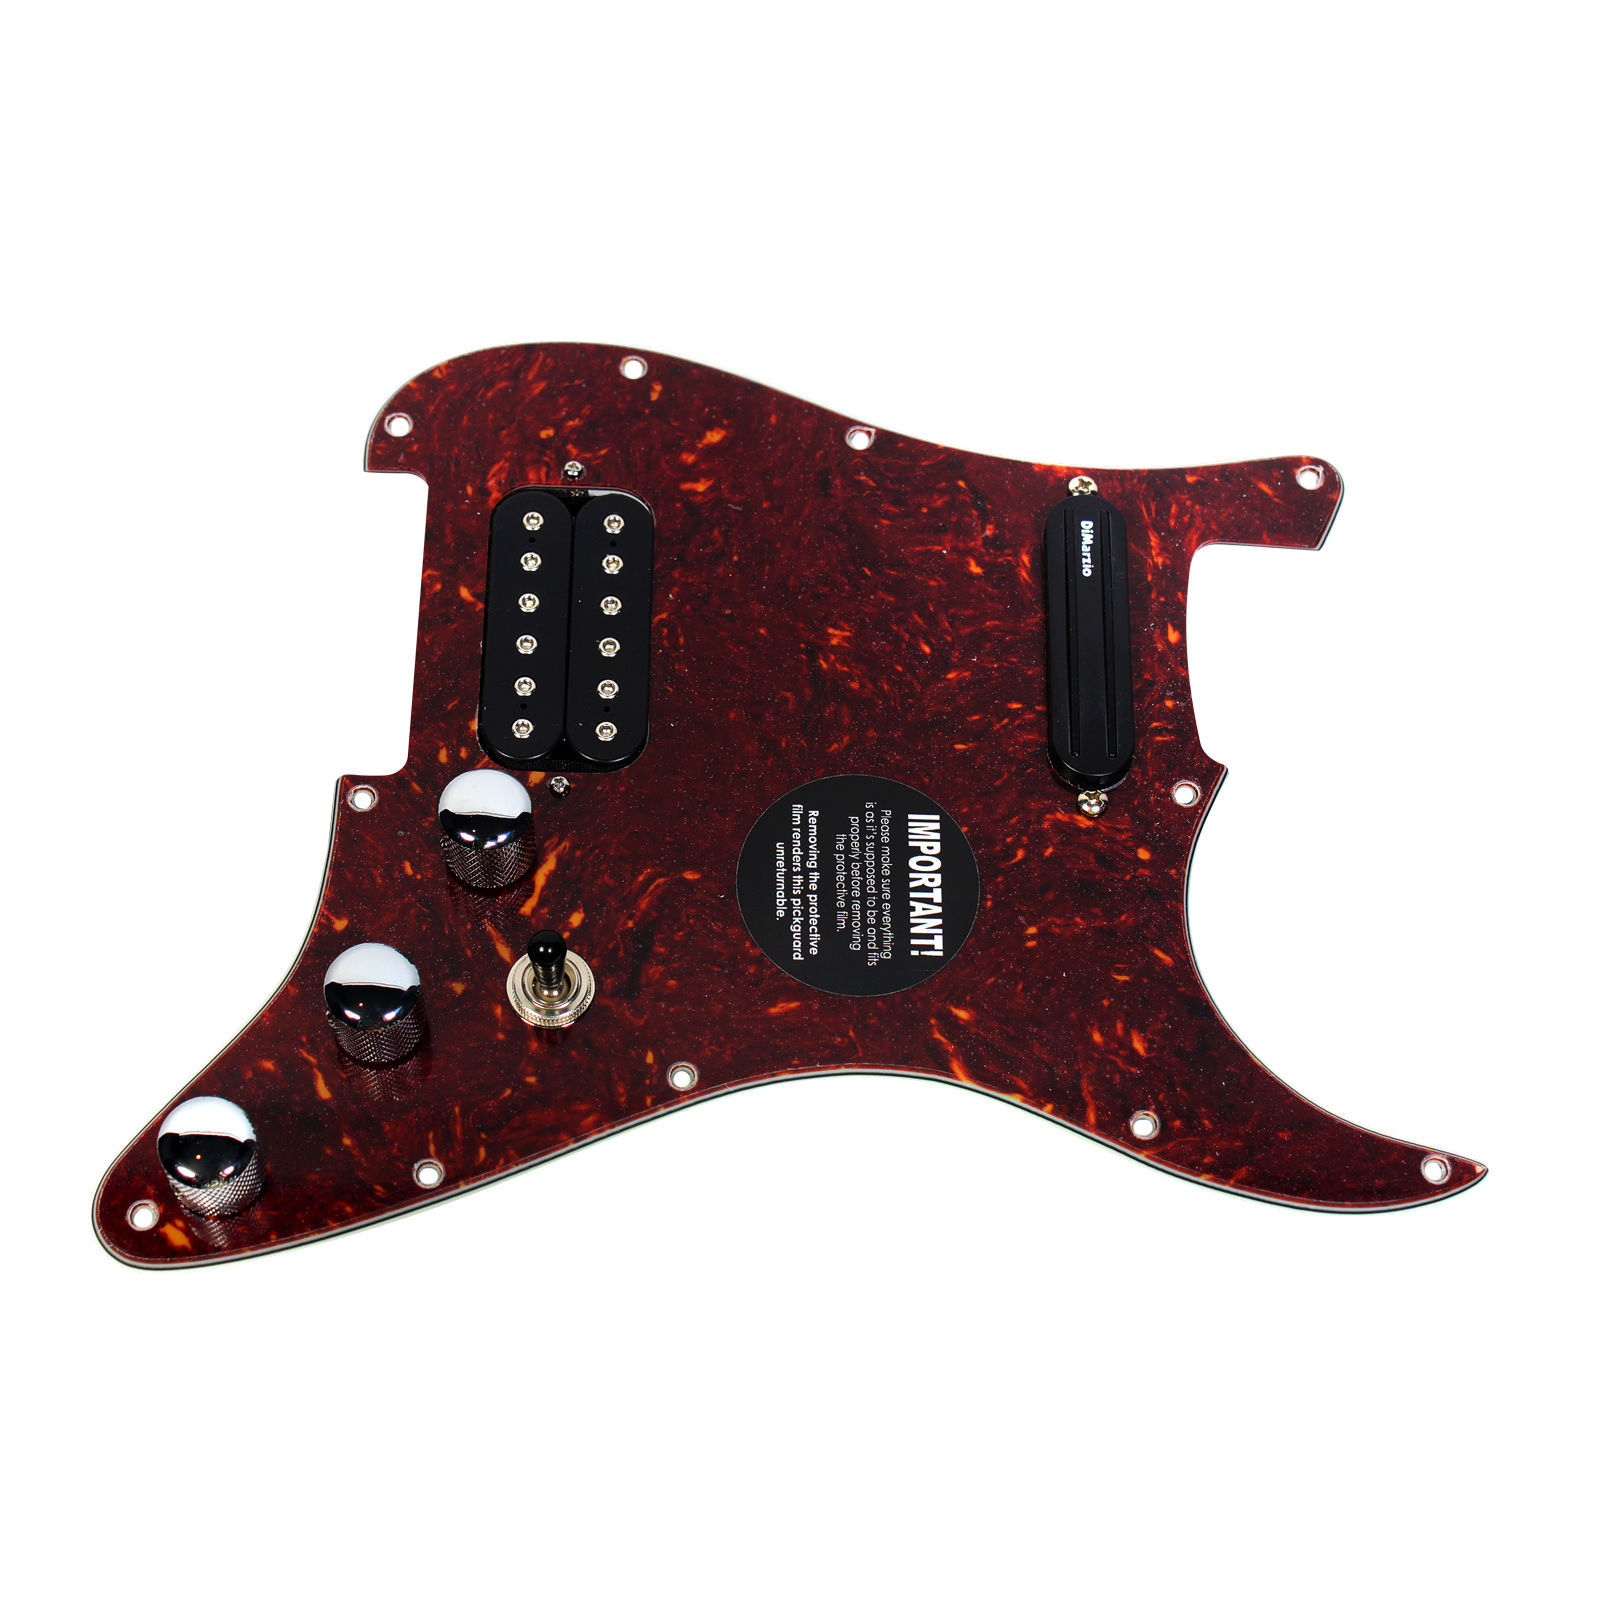 920D Strat Loaded Pickguard with DiMarzio Satriani Satch Track   Mo' Joe TO BK by